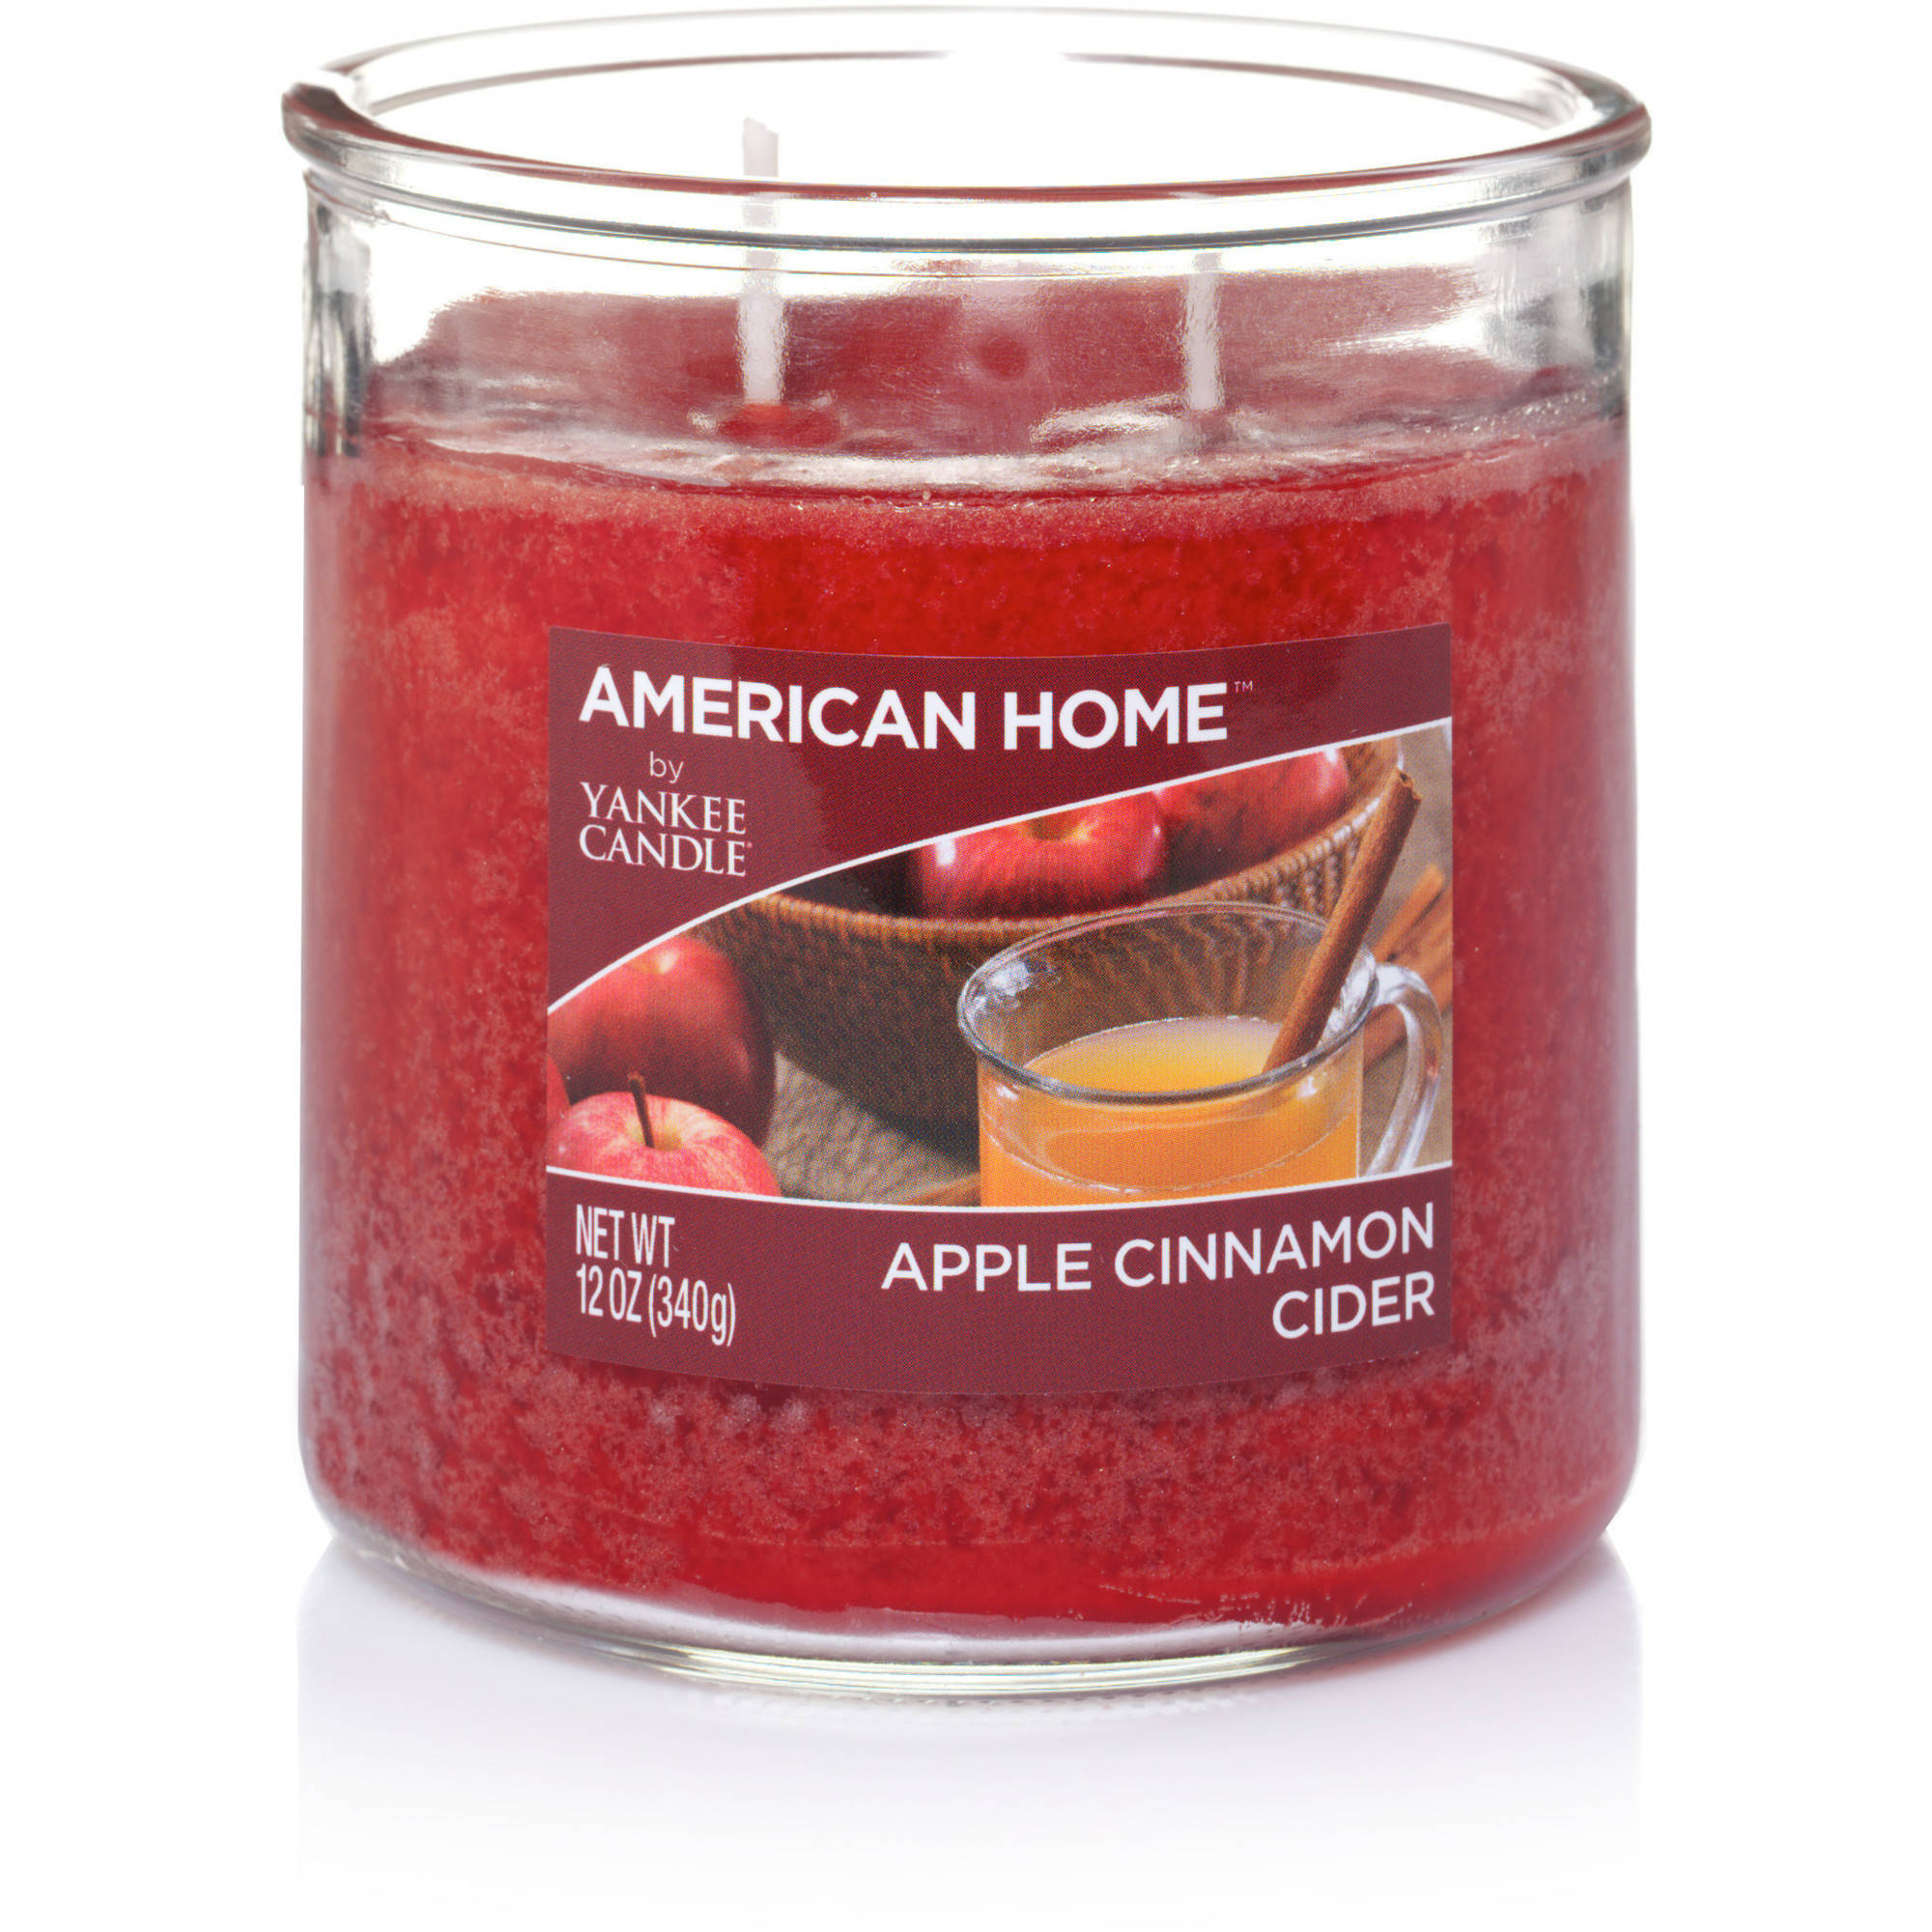 American Home by Yankee Candle Apple Cinnamon Cider, 12 oz Medium 2-Wick Tumbler